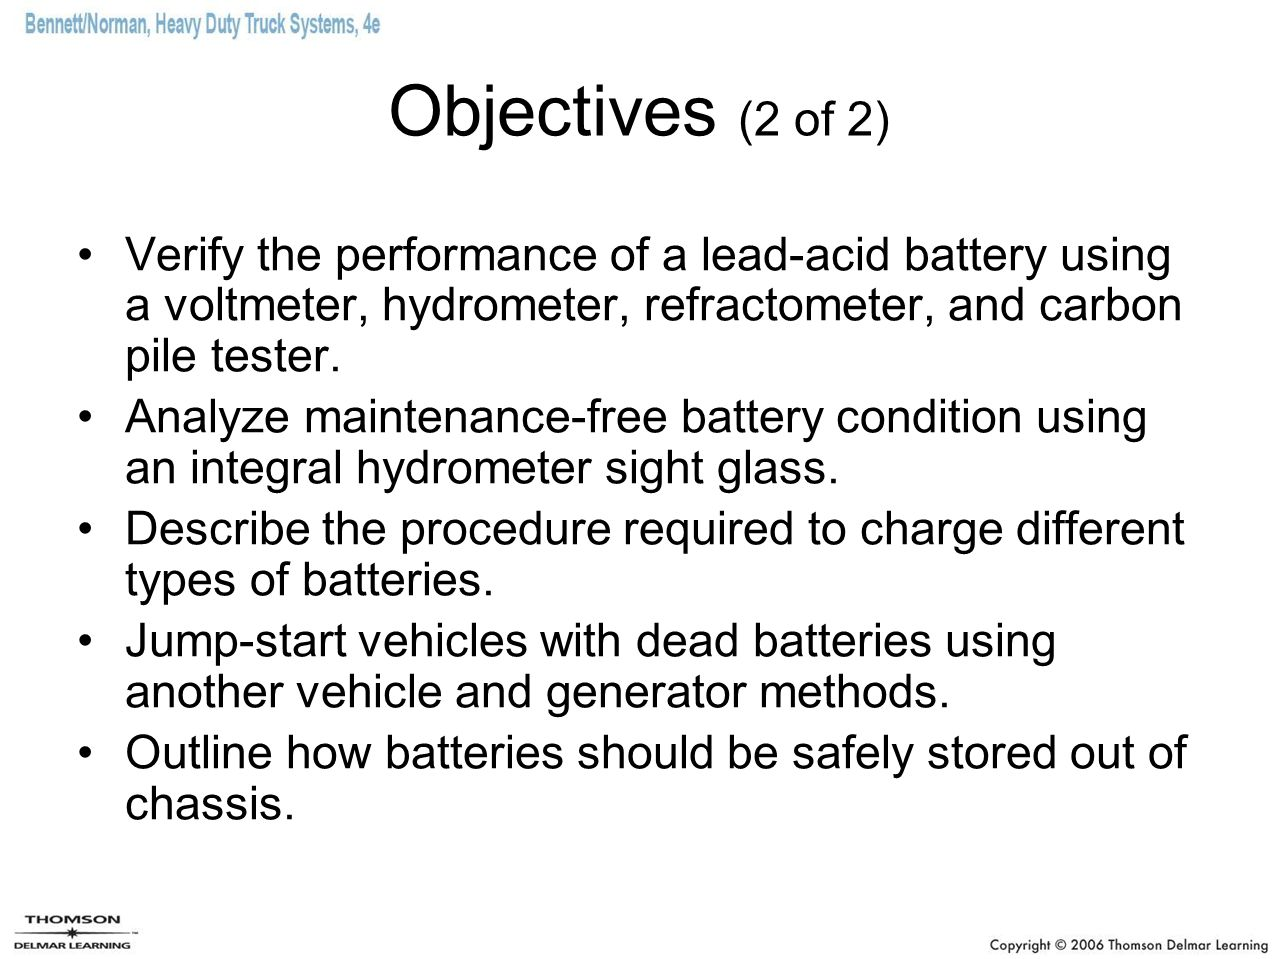 Objectives (2 of 2) Verify the performance of a lead-acid battery using a voltmeter, hydrometer, refractometer, and carbon pile tester.